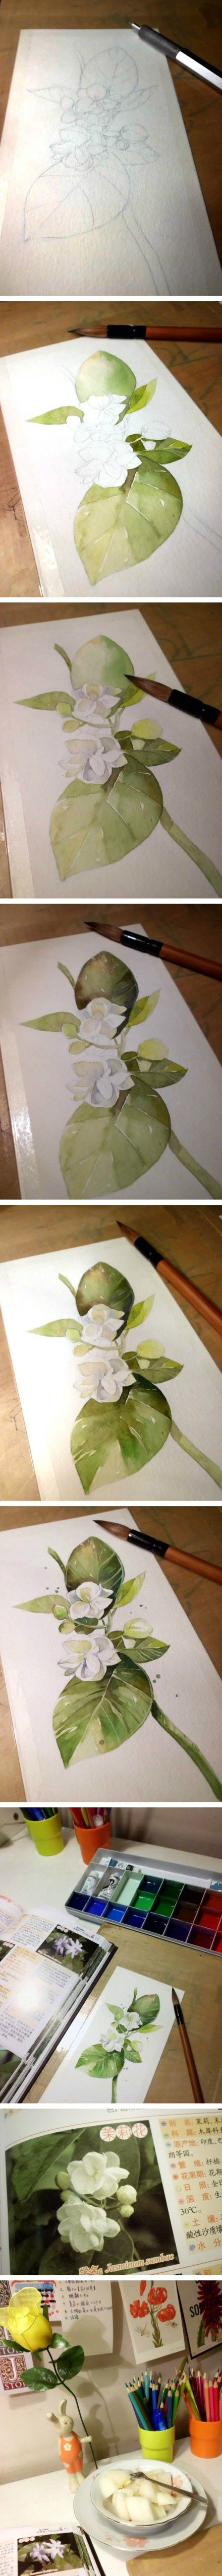 Step by step watercolour of jasmine